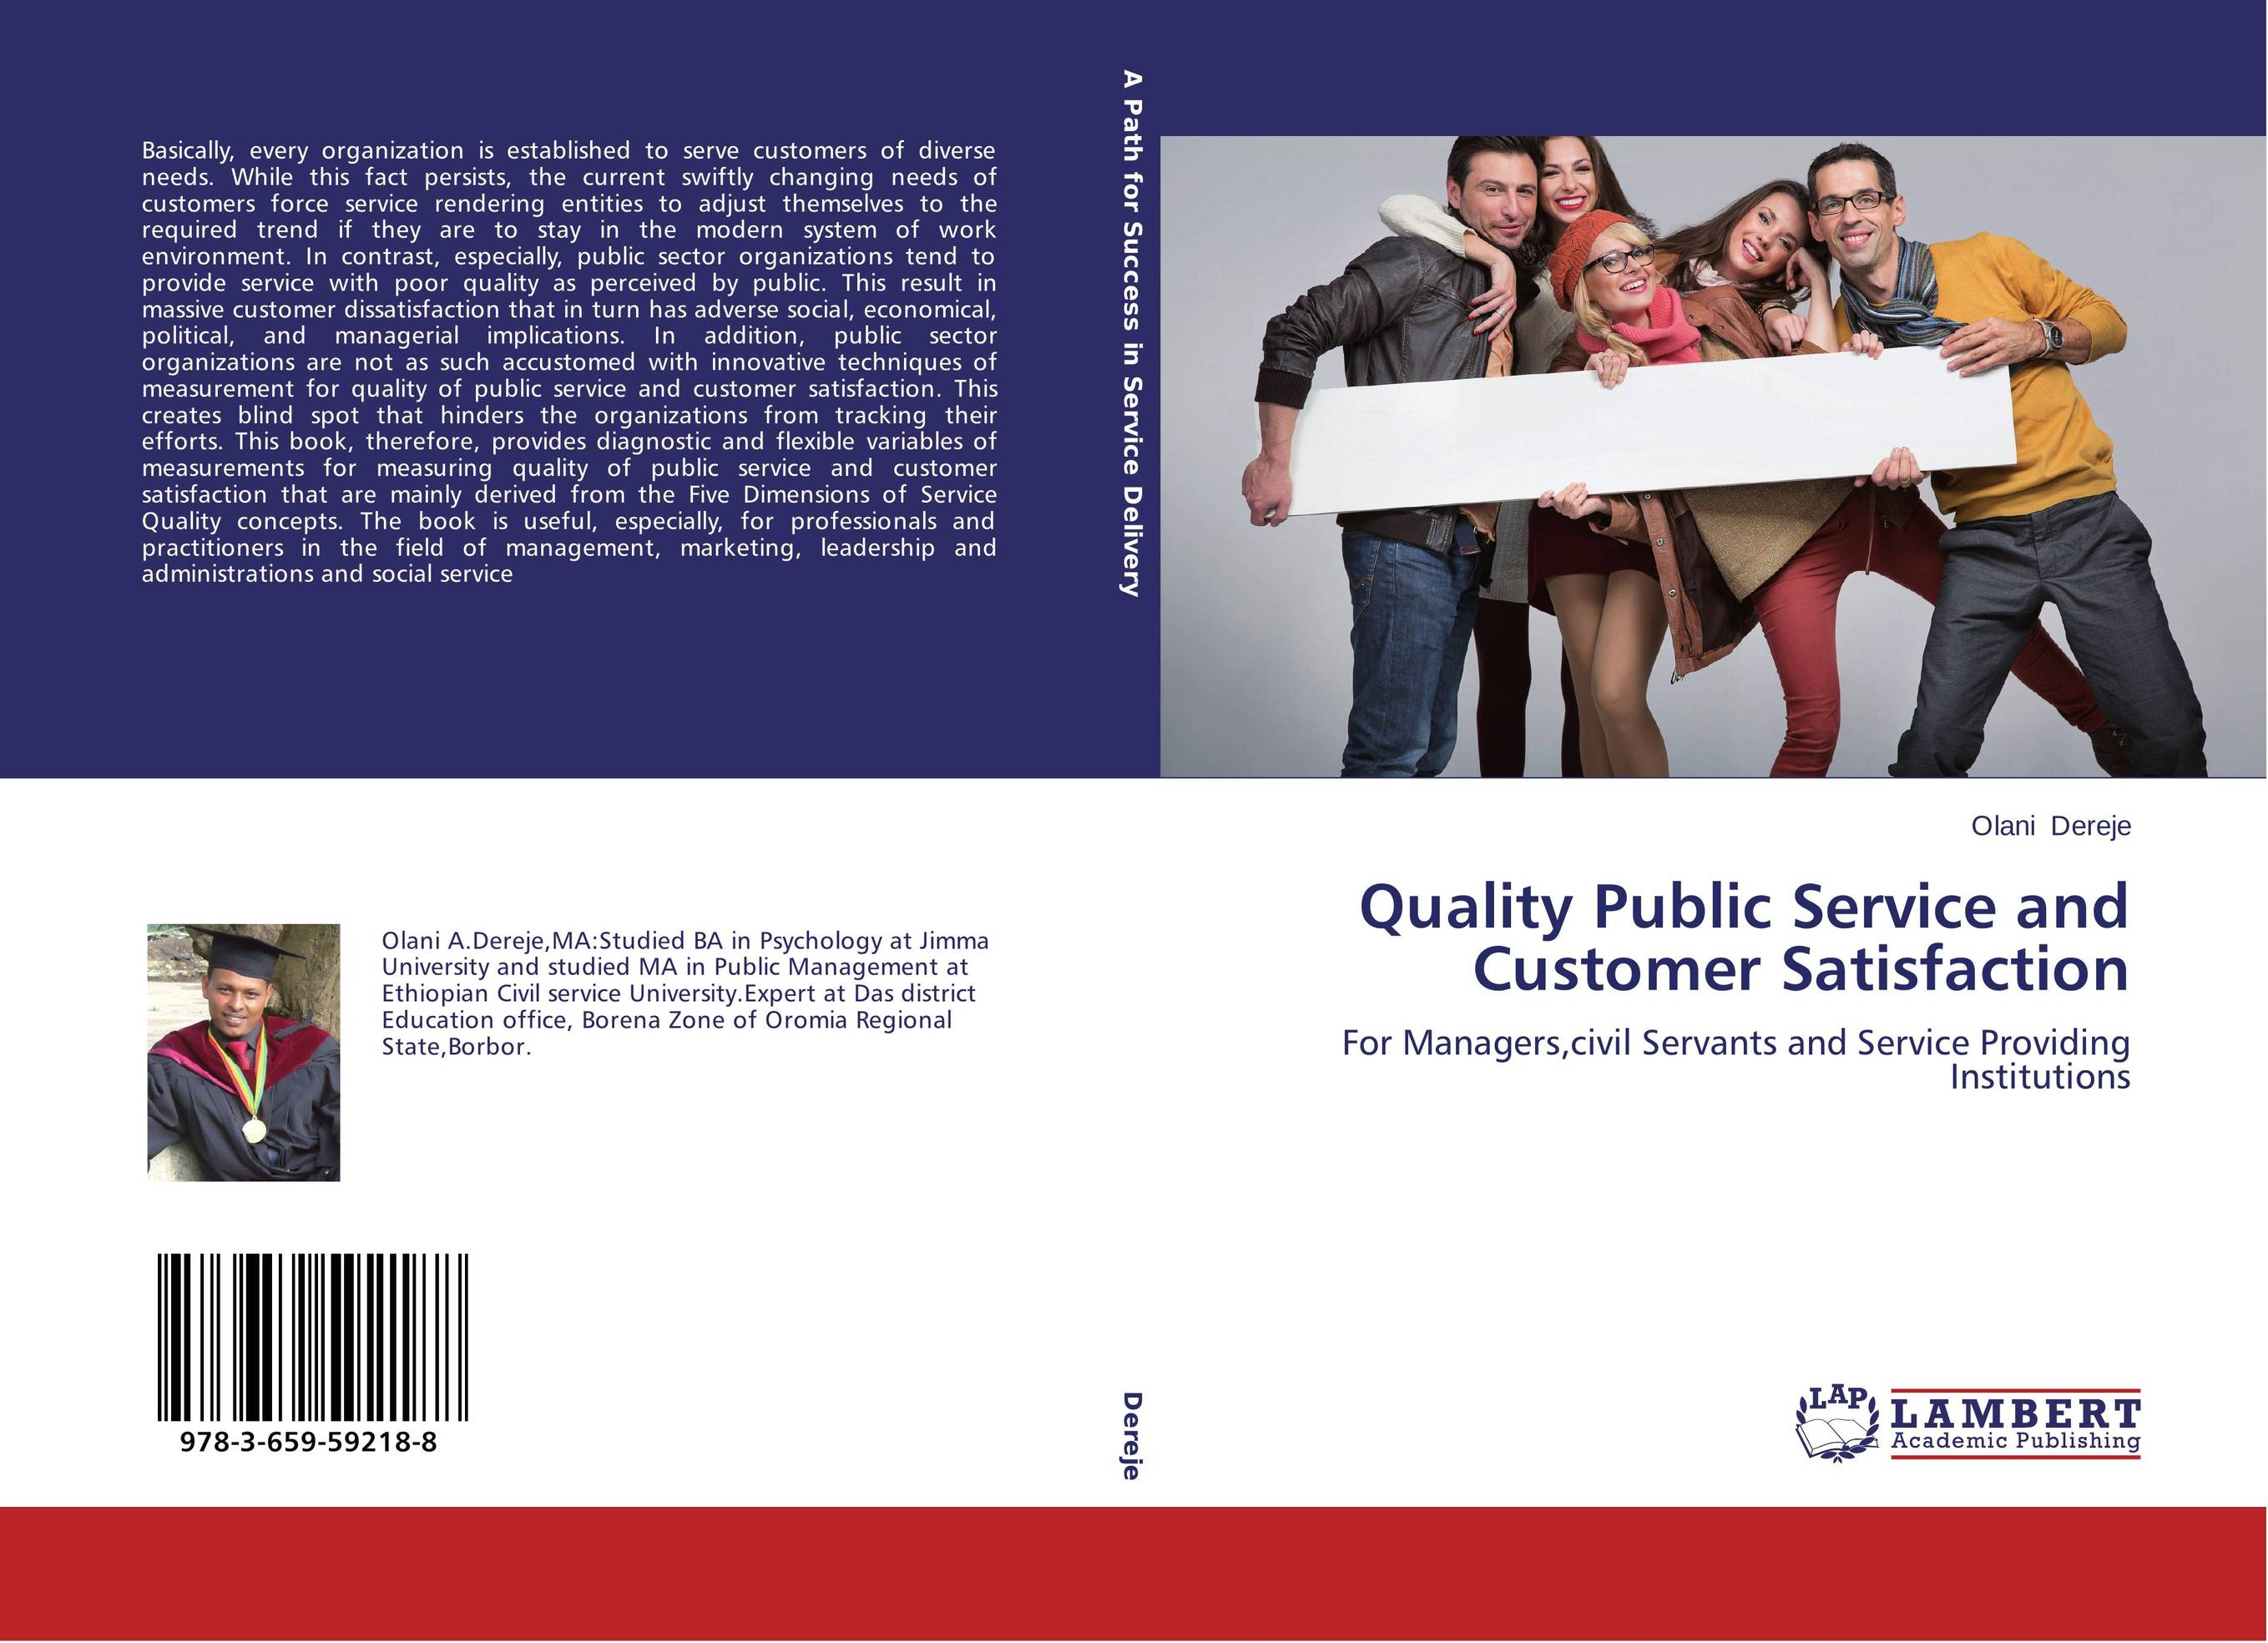 customer satisfaction and service quality in 1 introduction service quality is linked to several customer outcomes: customer satisfaction, attitudinal loyalty, and purchase intentions however, no consensus exists on the statistical significance, direction, or magnitude of the effects of service quality on such outcomes (carrillat, jaramillo, & mulki, 2009.